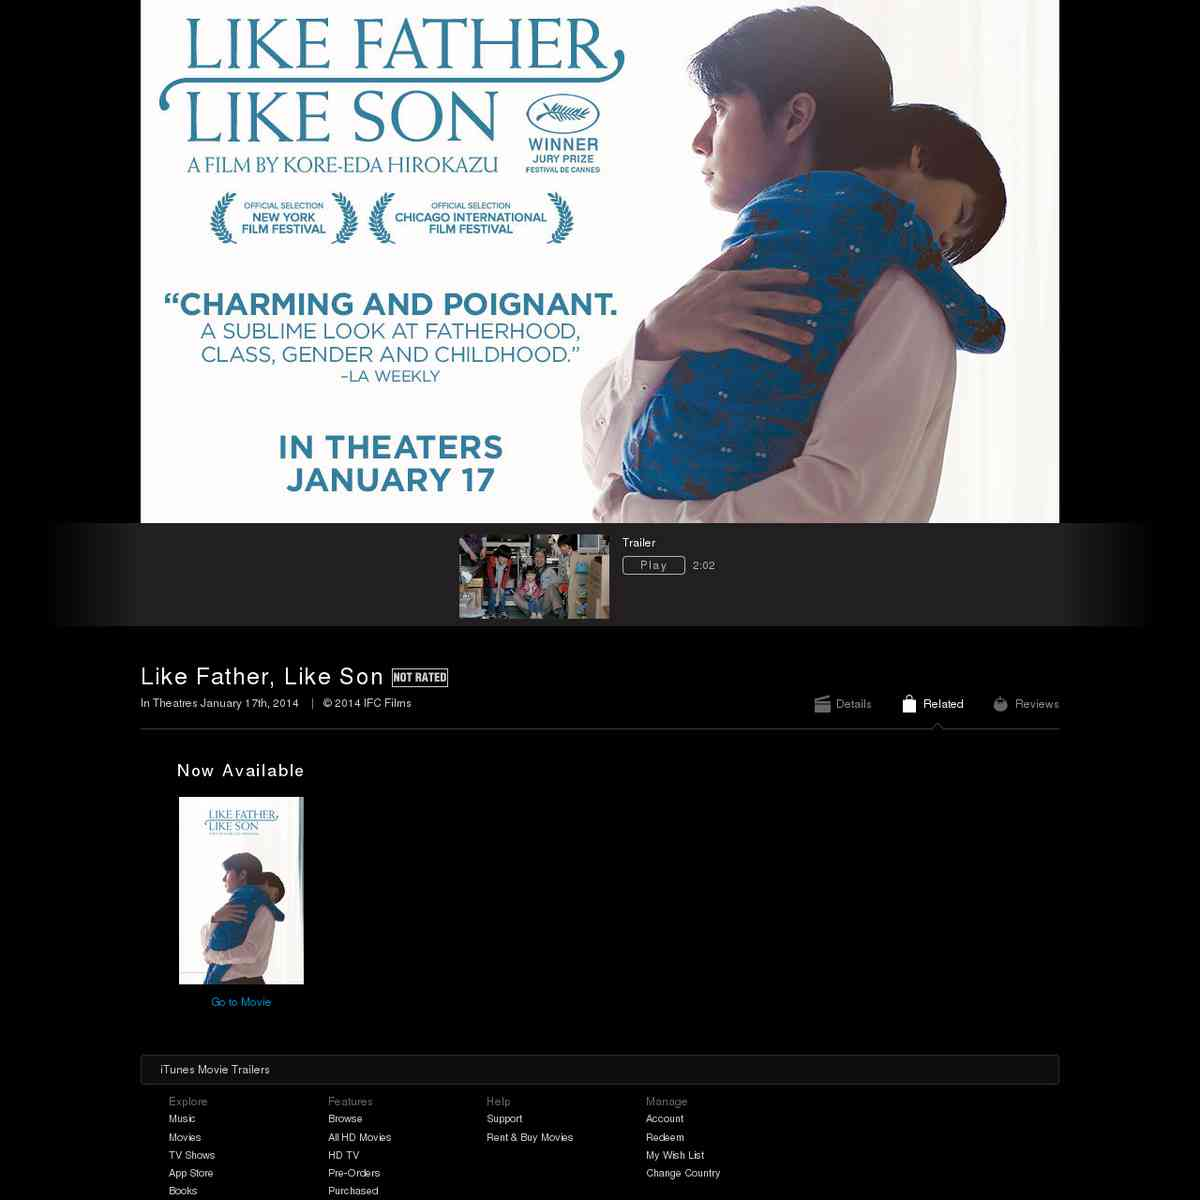 Like Father, Like Son - Movie Trailers - iTunes